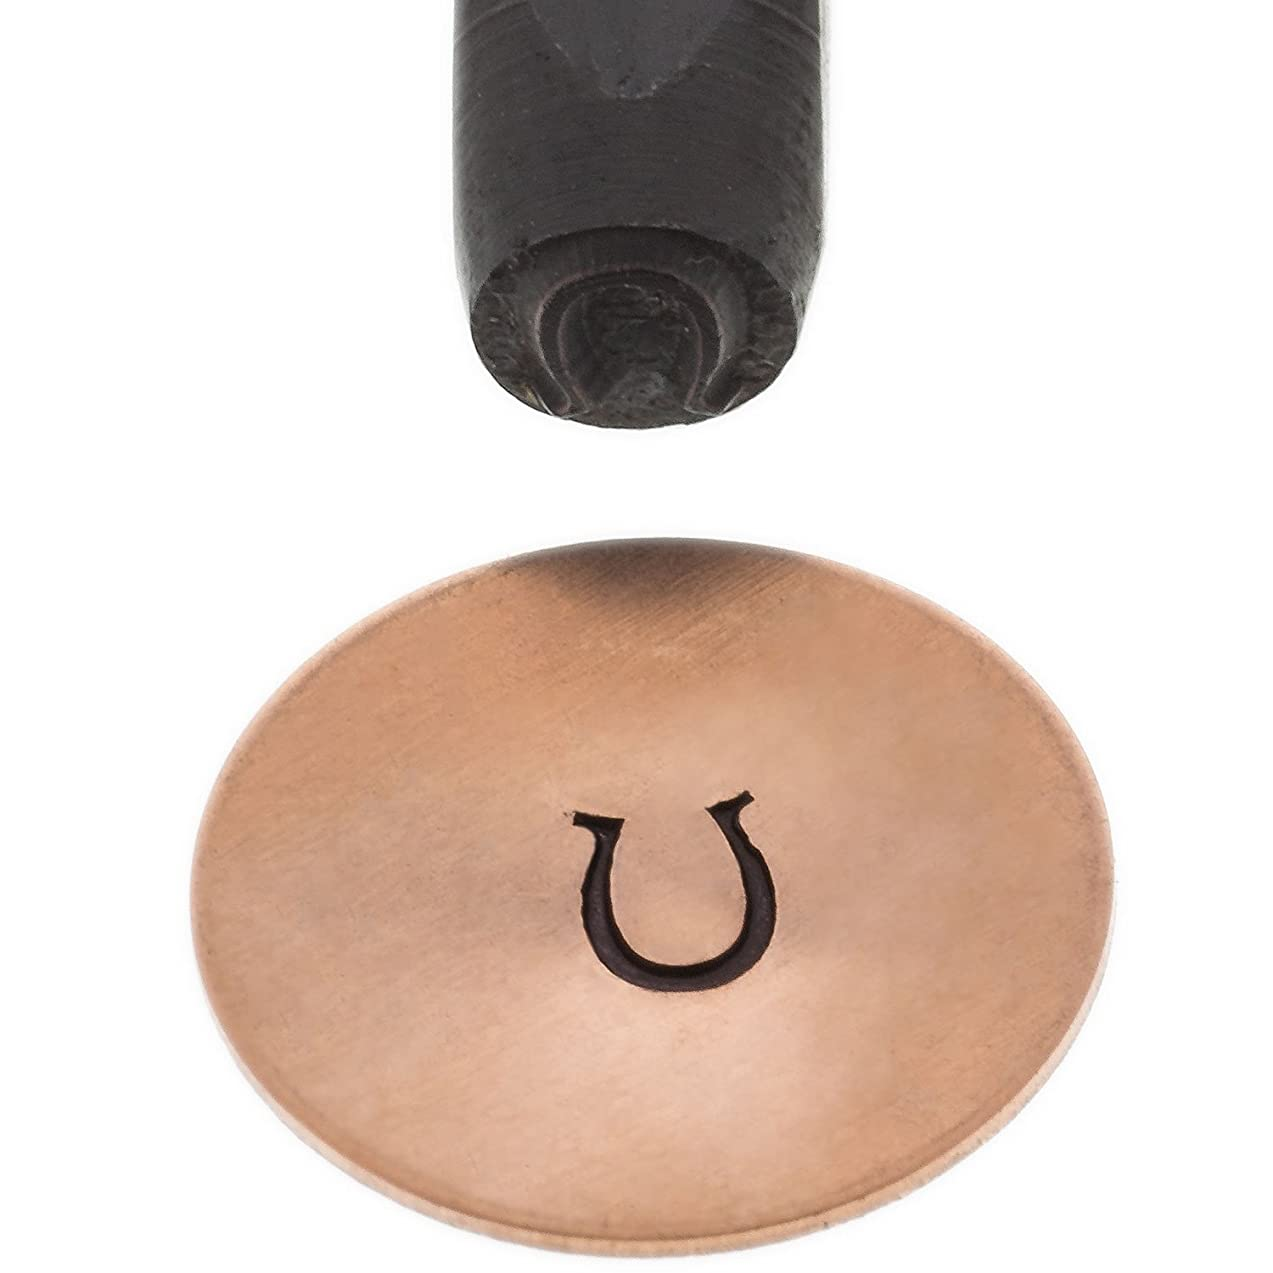 Elite Design Stamp, Horseshoe | PUN-203.51